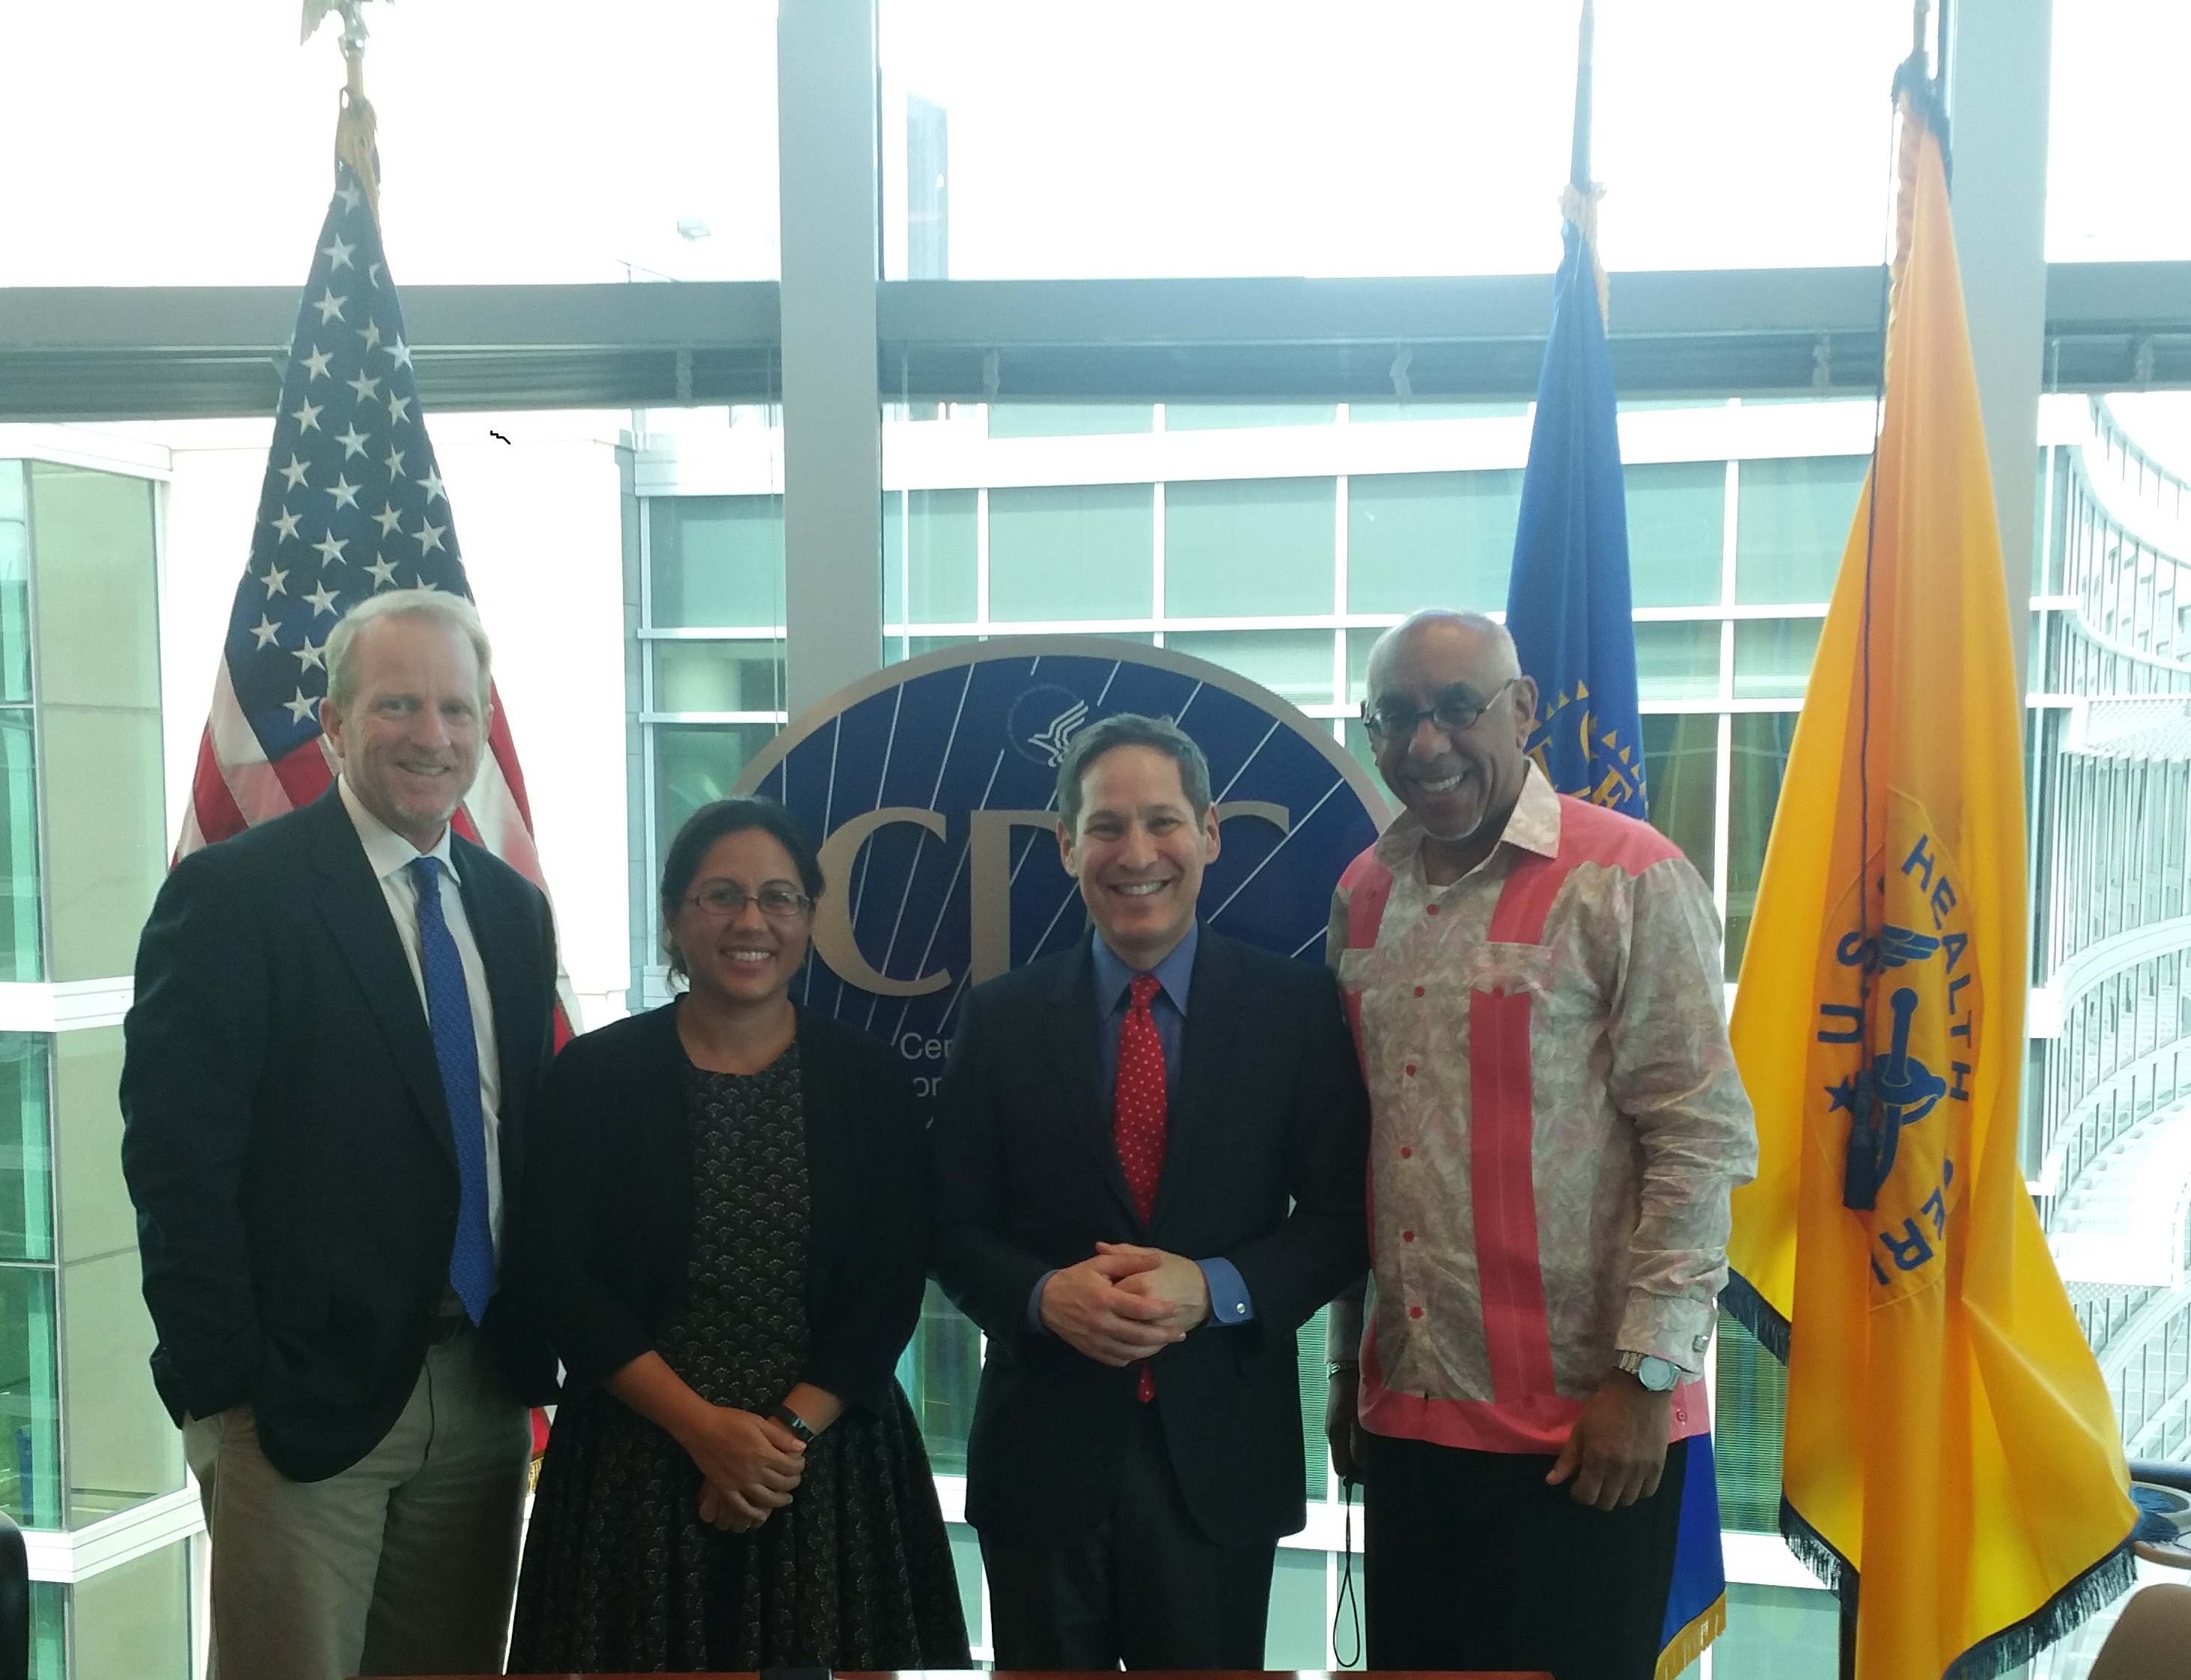 PIHOA Executive Director Emi Chutaro (2nd from left} and members of the OSTLTS Partnership Support Unit visit with CDC Director Dr. Tom Frieden (2nd from right) at CDC Headquarters